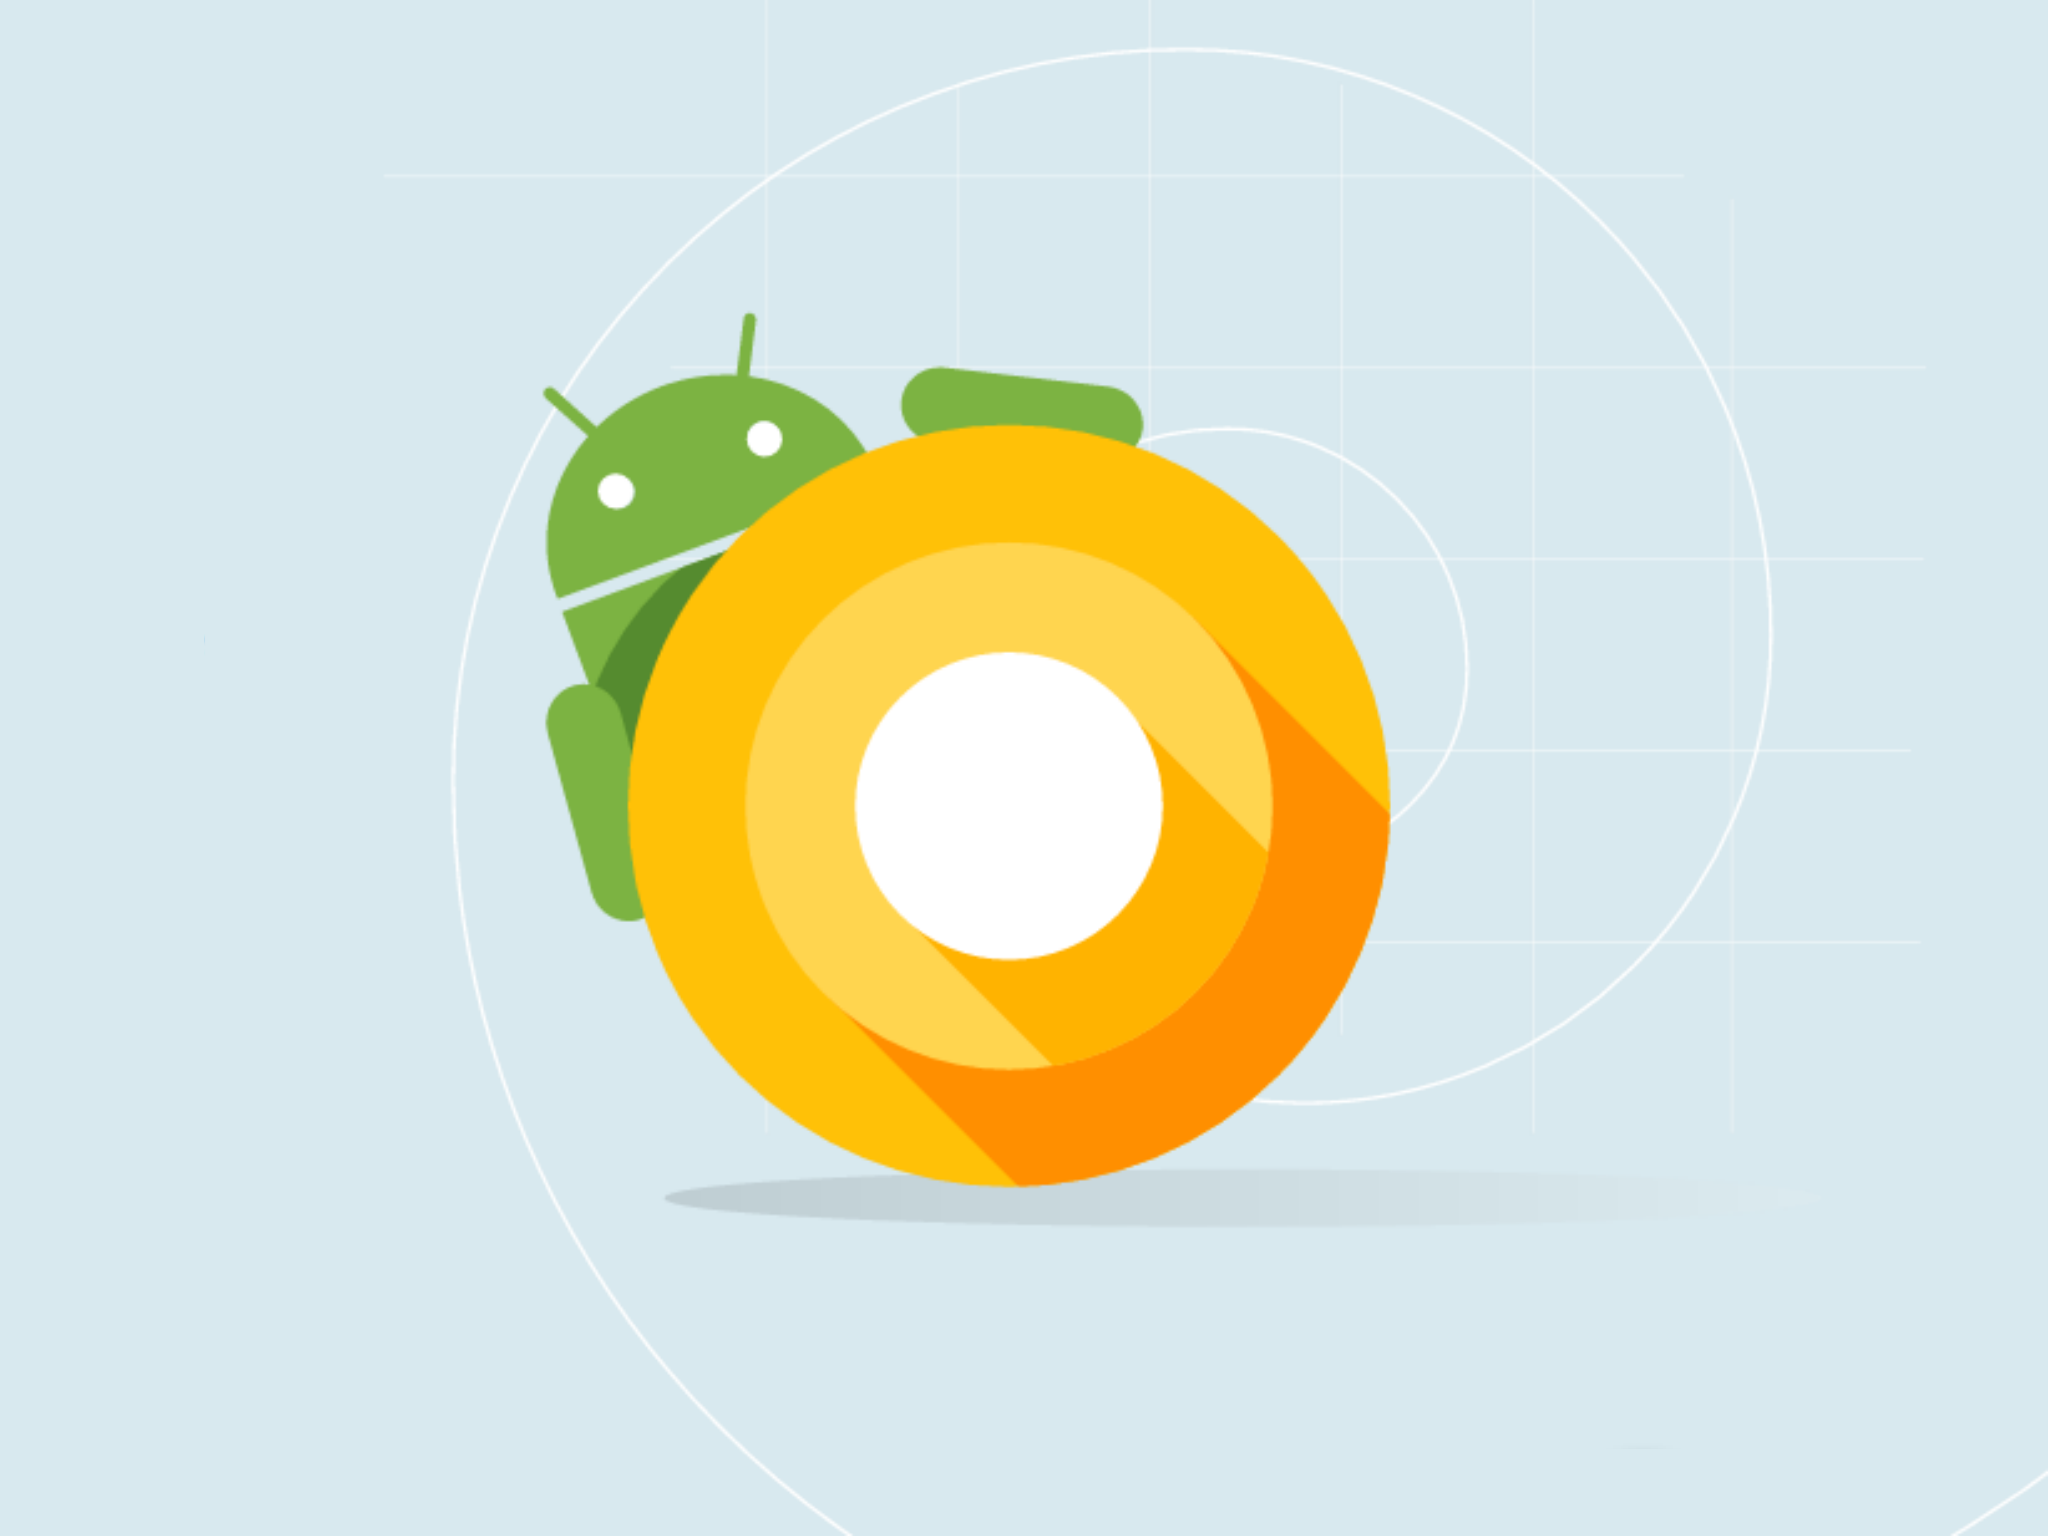 Android O: Everything you need to know about Google's new phone software